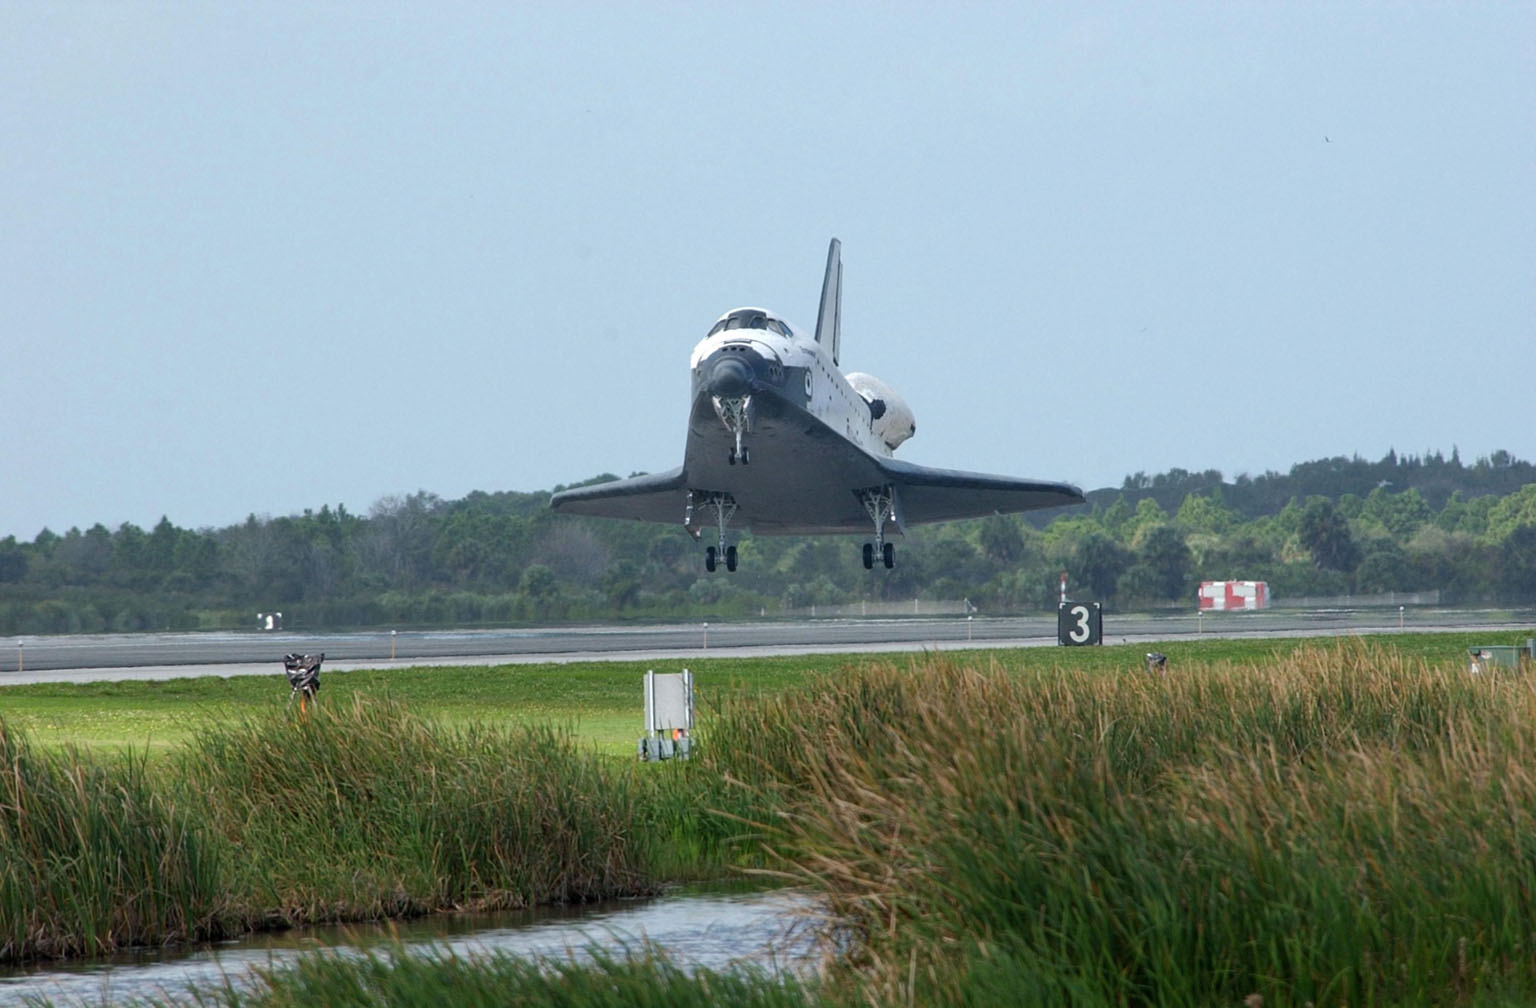 KENNEDY SPACE CENTER, FLA. - After dropping through cloud cover, Orbiter Endeavour approaches Runway 15 at the KSC Shuttle Landing Facility, with a mission elapsed time of 11 days, 19 hours, 35 minutes. Main gear touchdown occurred at 12:55:10 p.m. EST, nose gear touchdown at 12:55:23 p.m. , wheel stop at 12:56:13 p.m. The landing, the 57th at KSC in the history of the program completed the STS-108 mission known as Utilization Flight 1, which was the 12th mission to the International Space Station. This mission was the 107th flight in the Shuttle program and the 17th flight for the orbiter. Endeavour carries both the mission crew and the Expedition 3 crew - Commander Frank Culbertson and cosmonauts Vladimir Dezhurov and Mikhail Tyurin - who are returning to Earth after 129 days in space on the Space Station